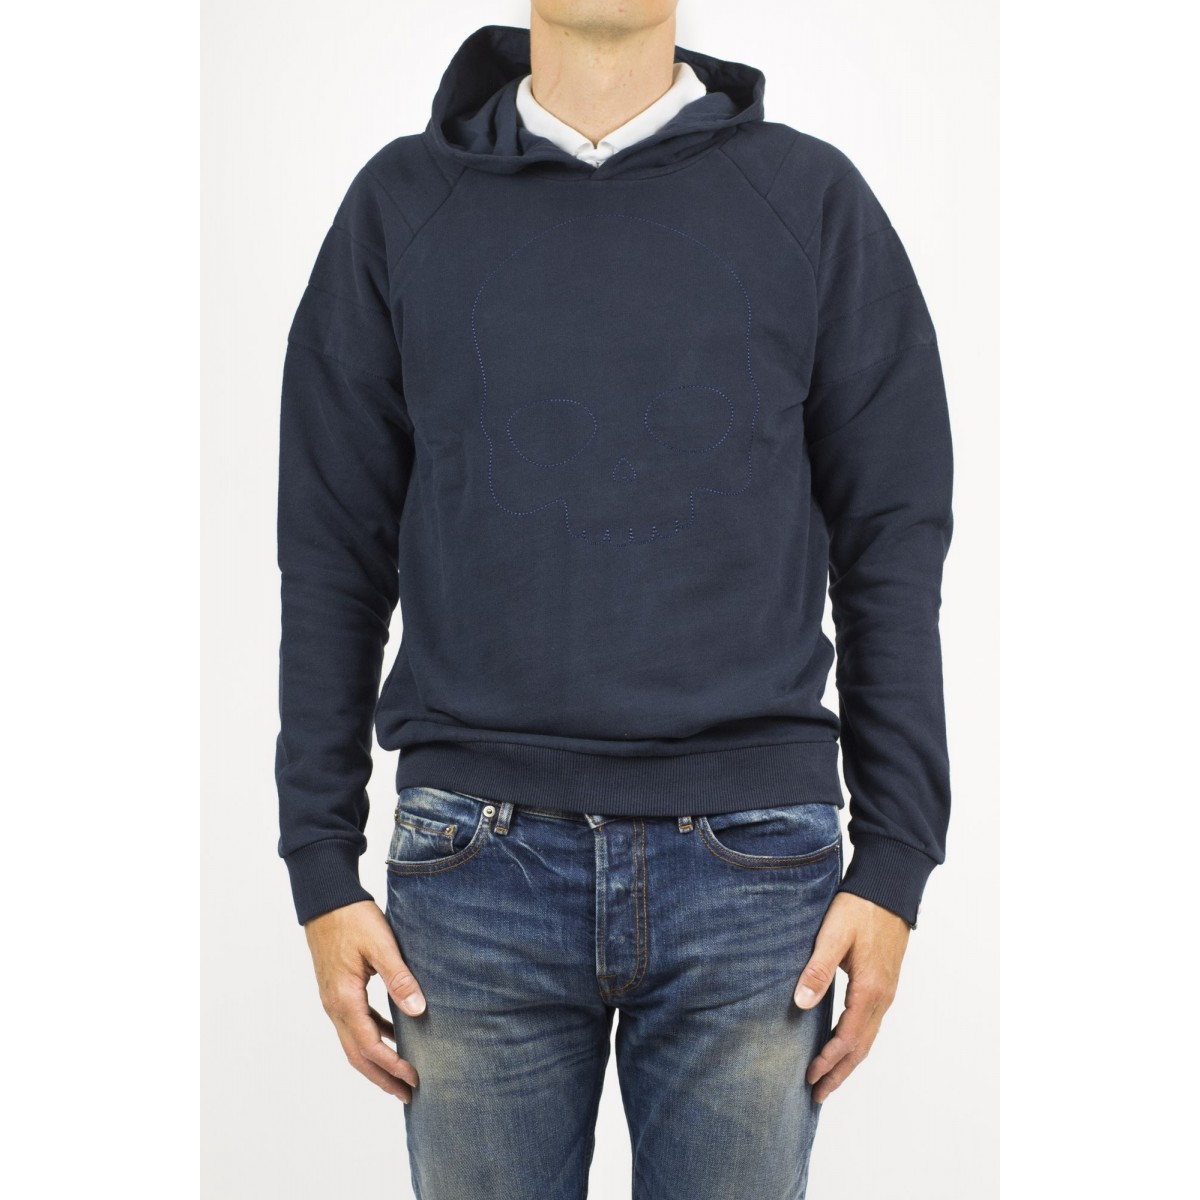 Hoodies Hydrogen Man - 154000